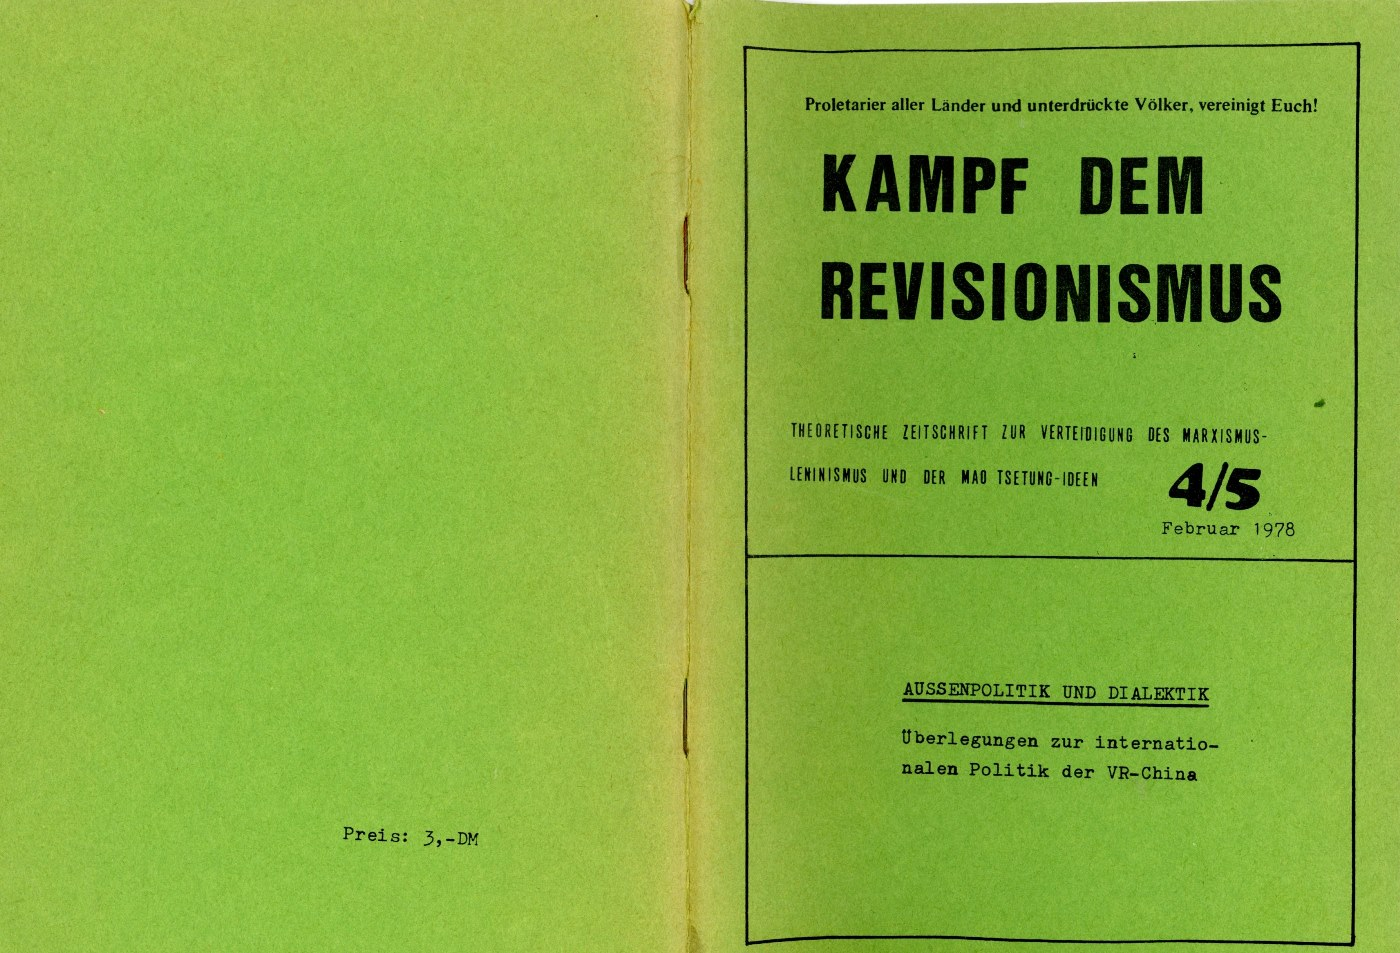 Muenchen_Kampf_dem_Revisionismus_1978_04_05_01